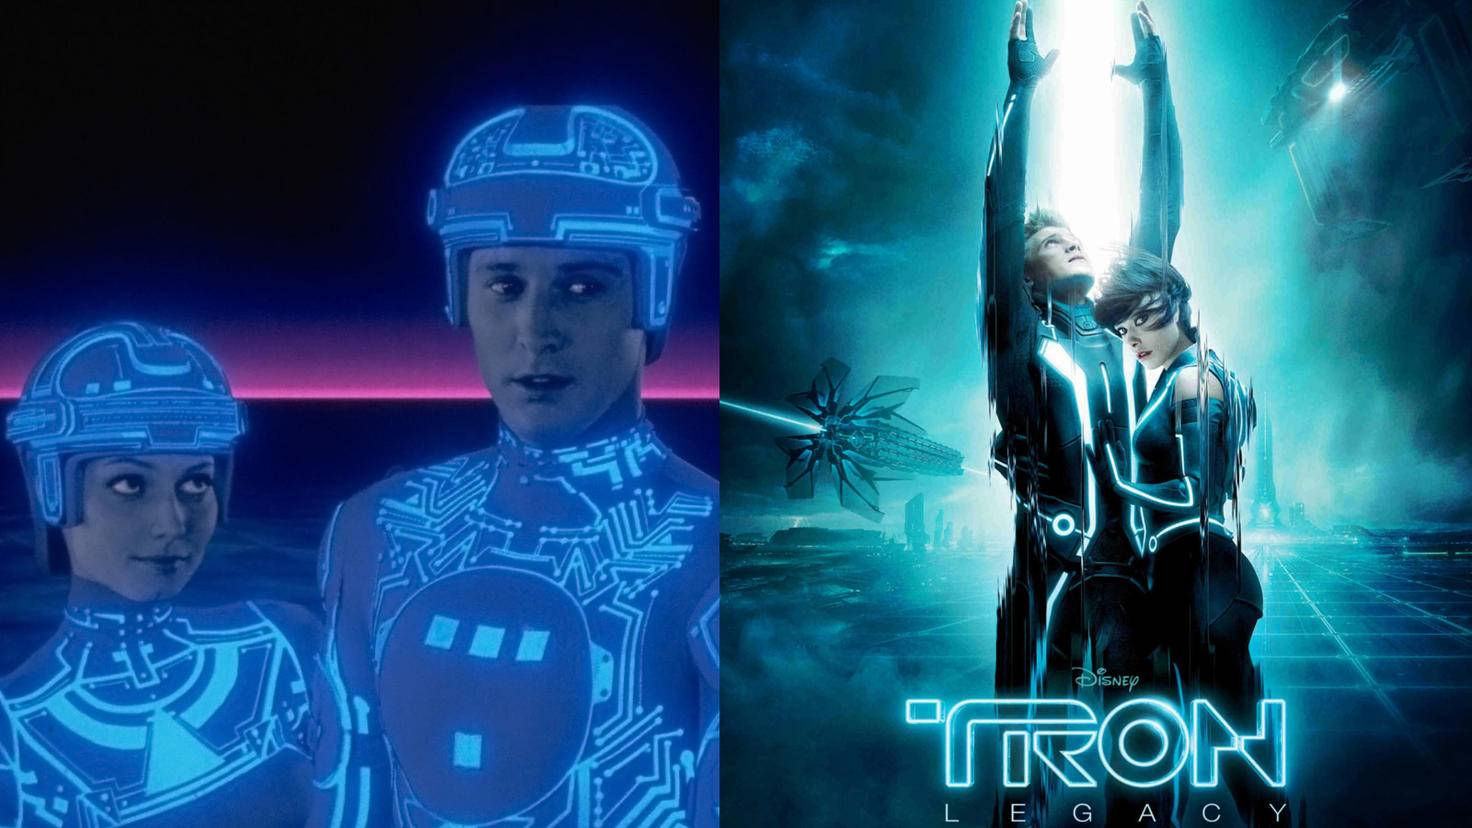 Tron-Walt Disney Studios-Tron Legacy-Filmposter-picture alliance-Everett Collection-92613032